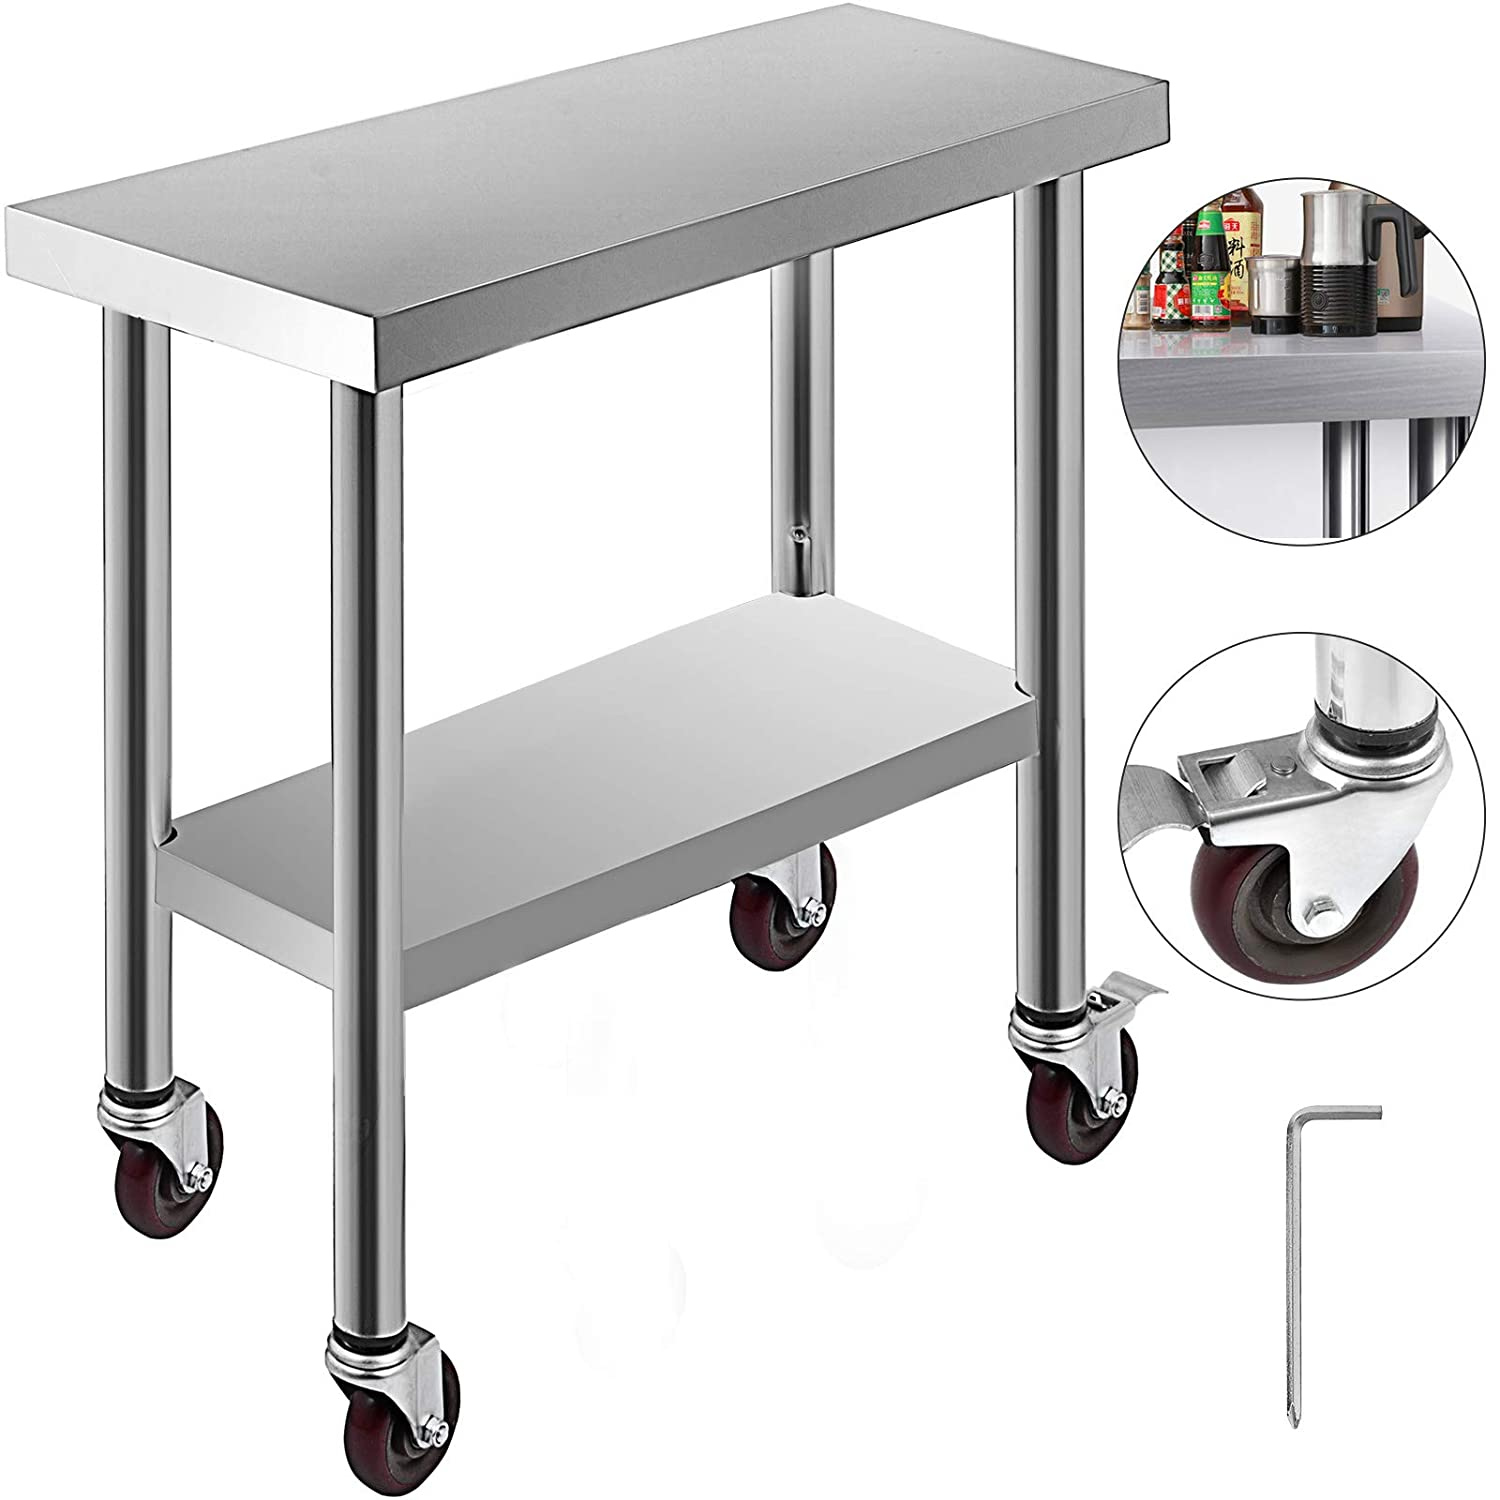 Mophorn Stainless Steel Work Table 30x12x34 Inch 3 Stage Adjustable Shelf with 4 Wheels Heavy Duty Commercial Food Prep Worktable with Brake